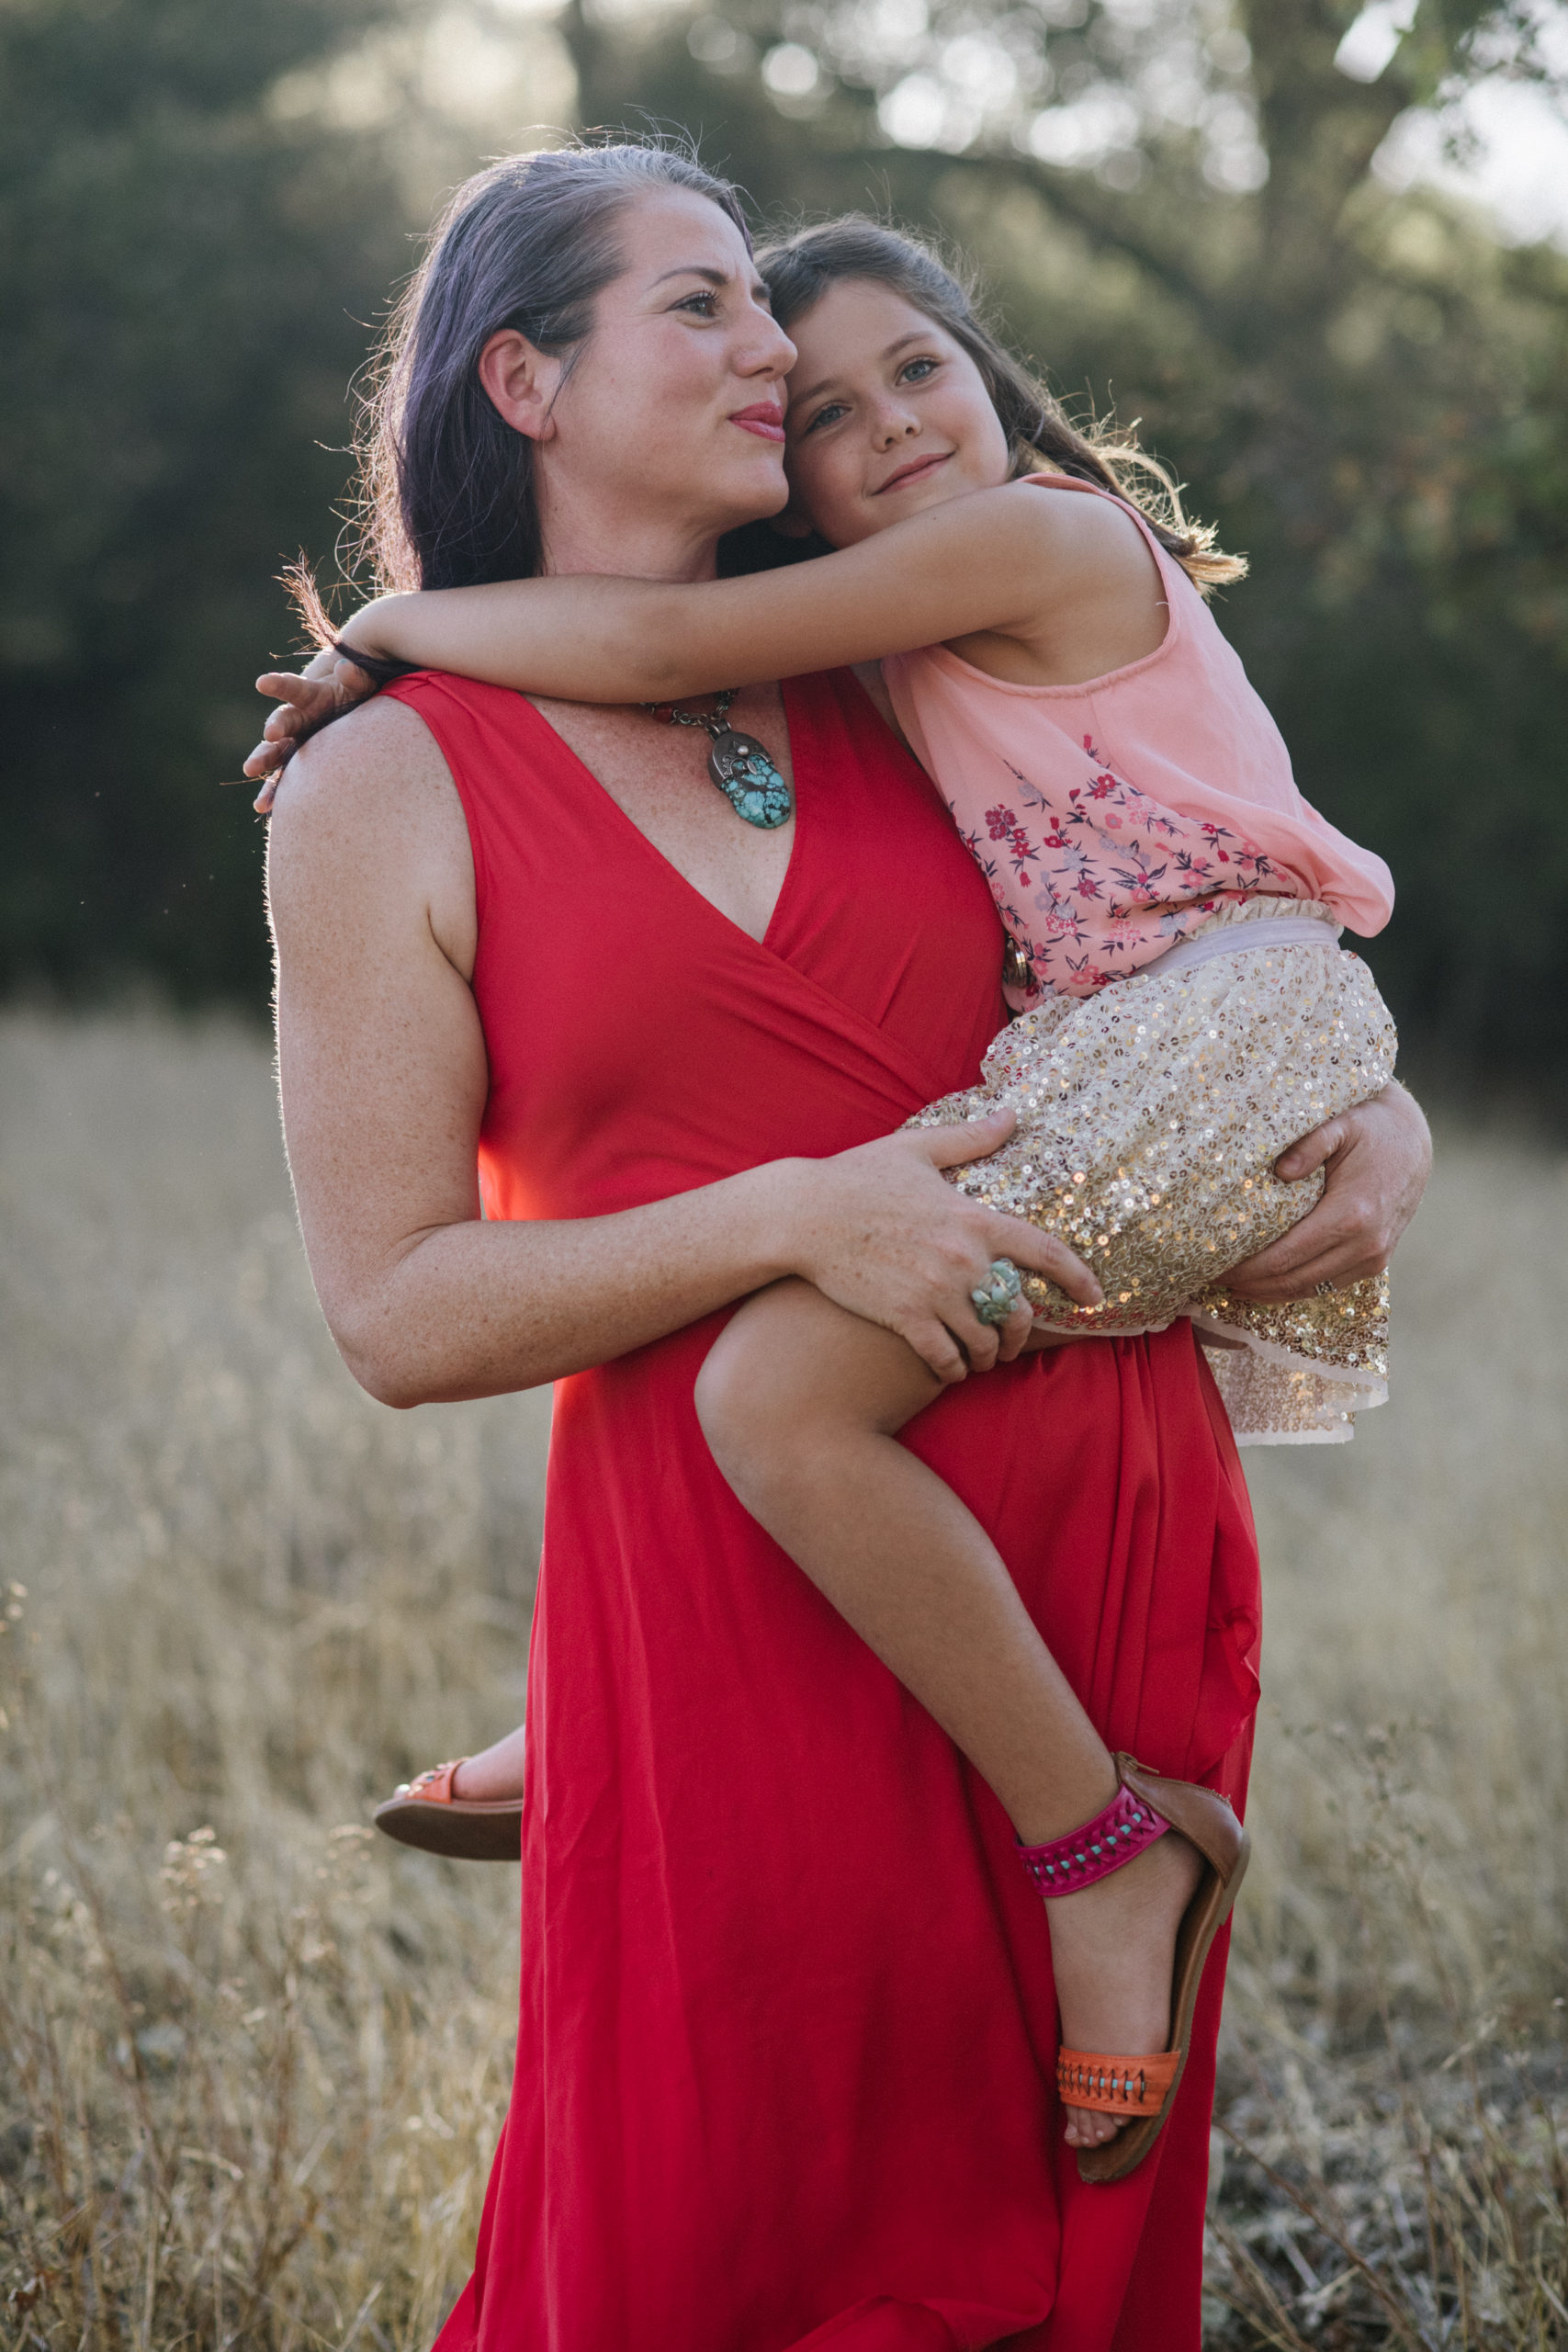 Woman in a red dress holding a child in a field